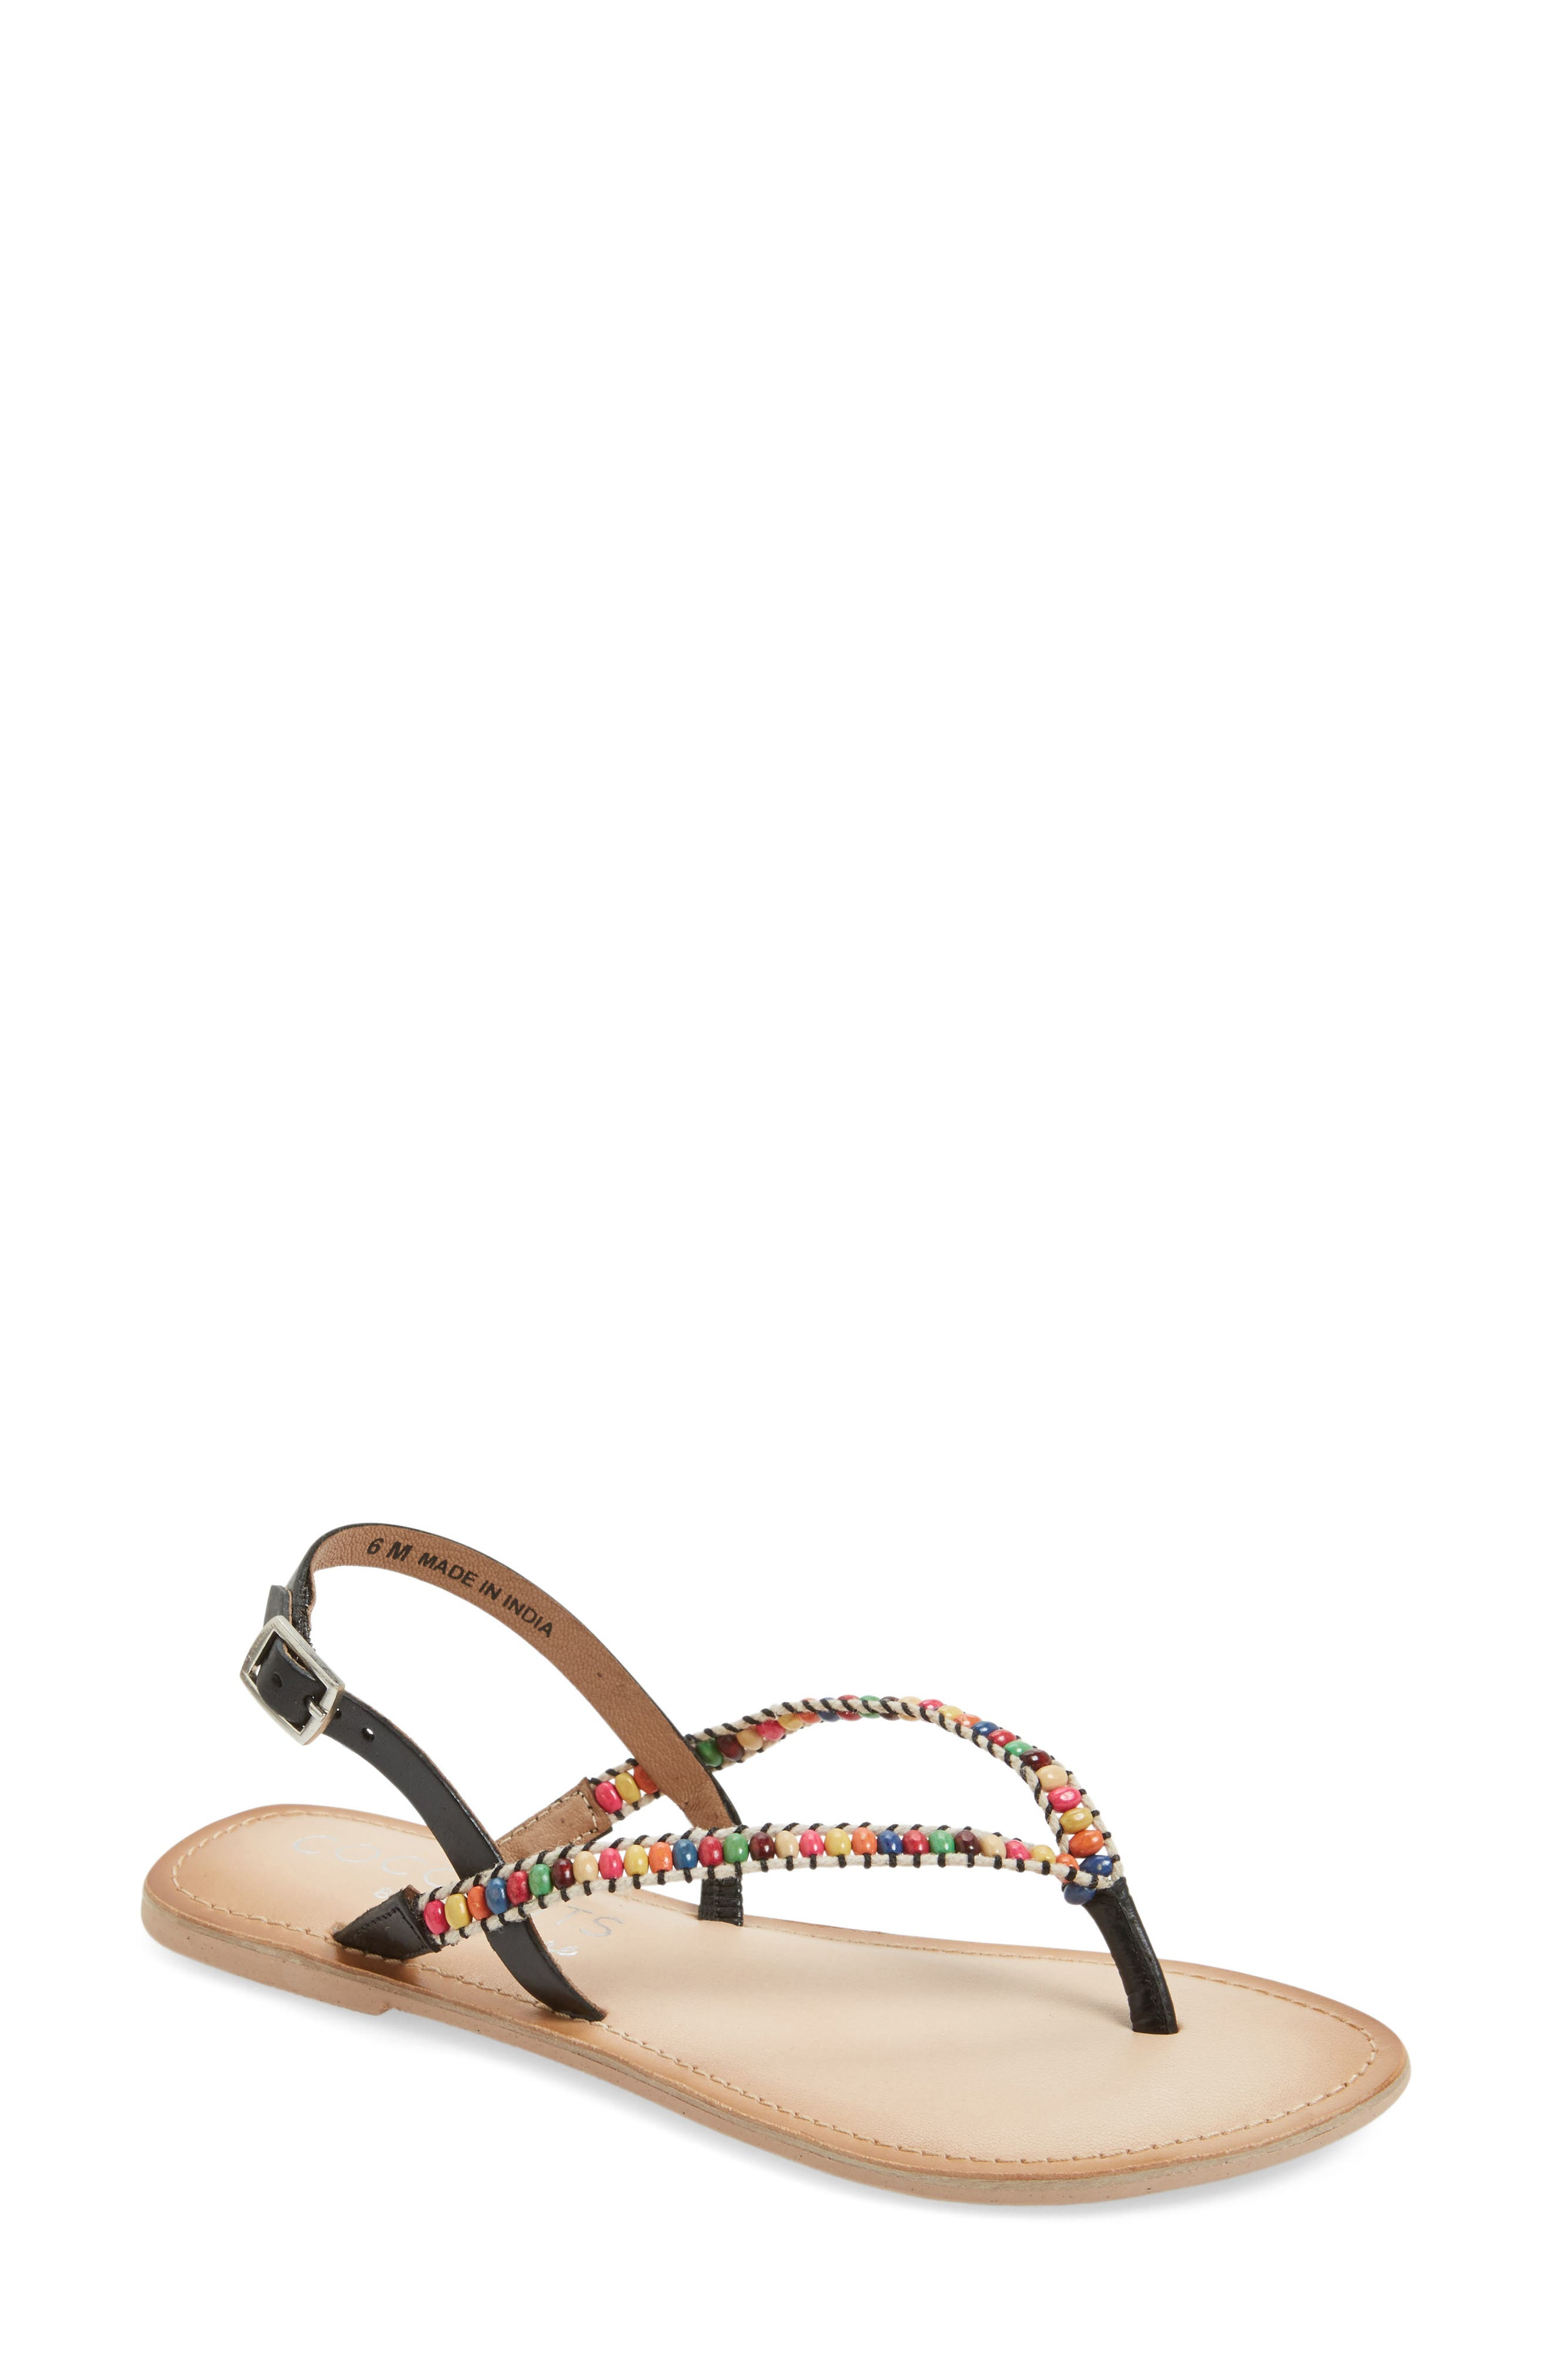 Coconuts by Matisse Celebration Beaded Sandal,                         Main,                         color,